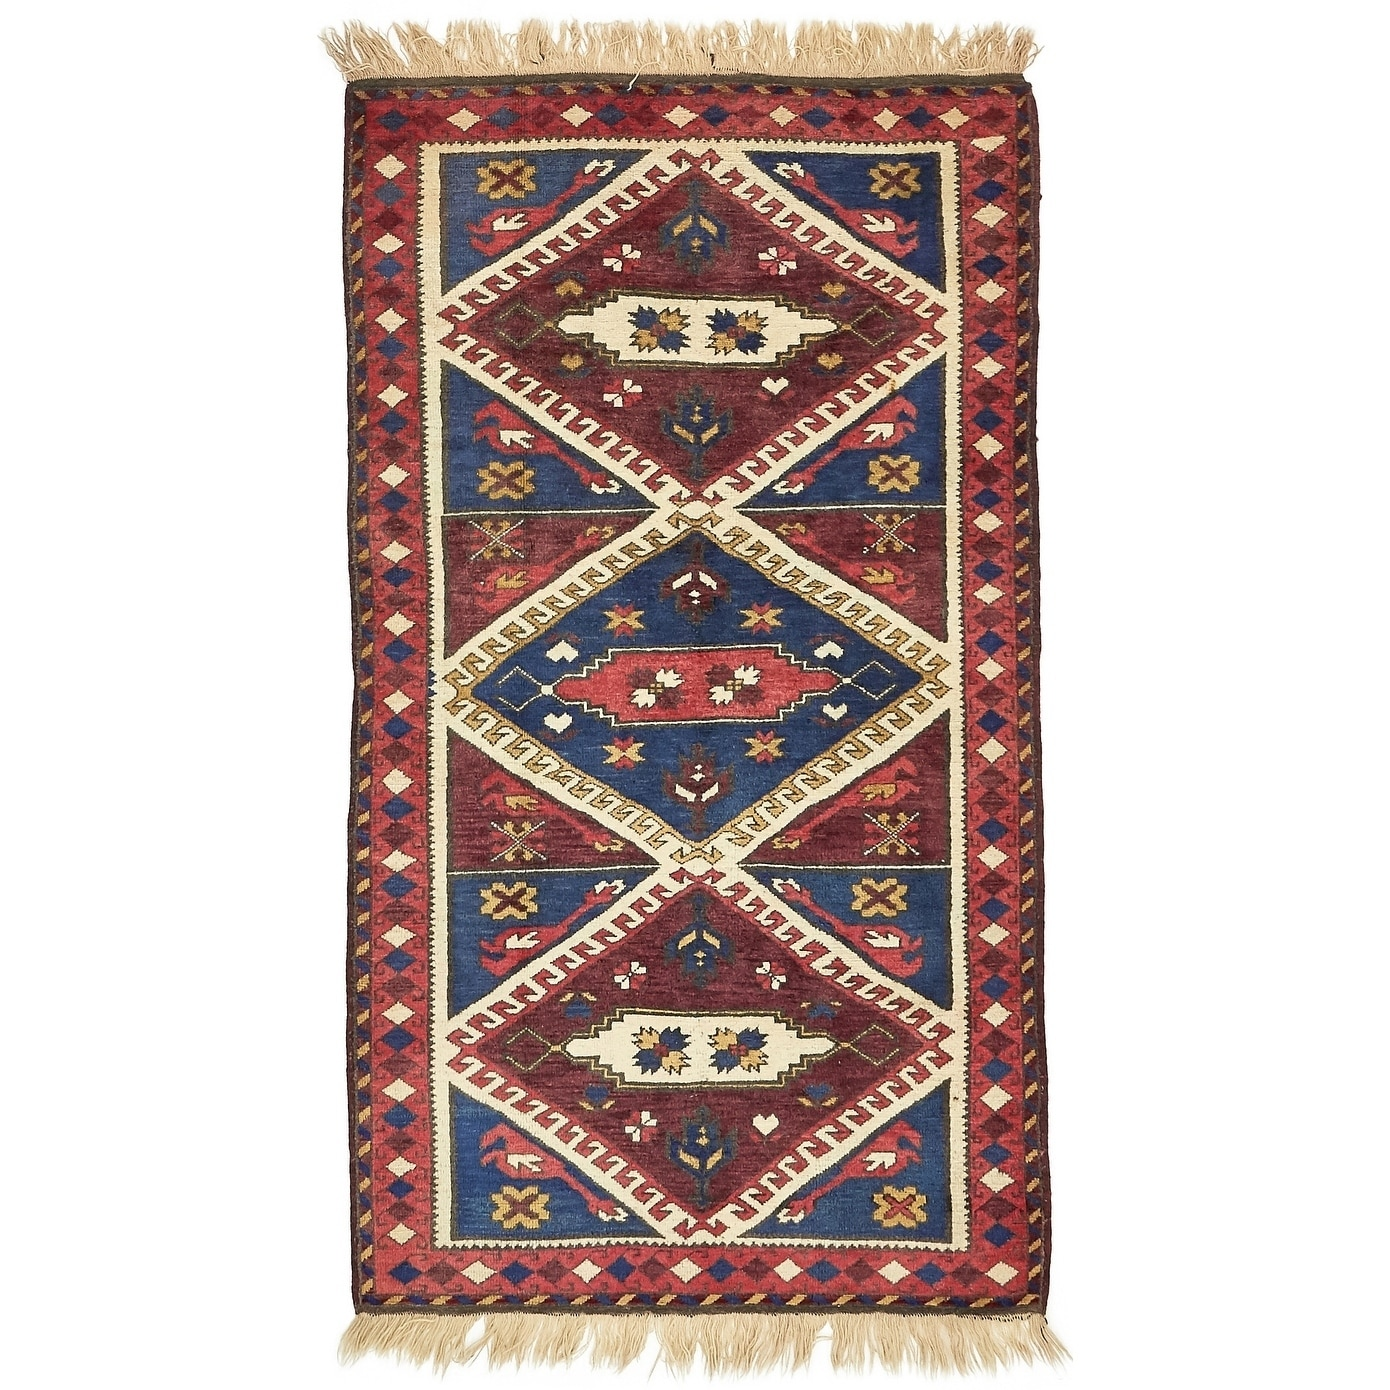 Hand Knotted Kars Wool Area Rug - 3 7 x 6 5 (Red - 3 7 x 6 5)